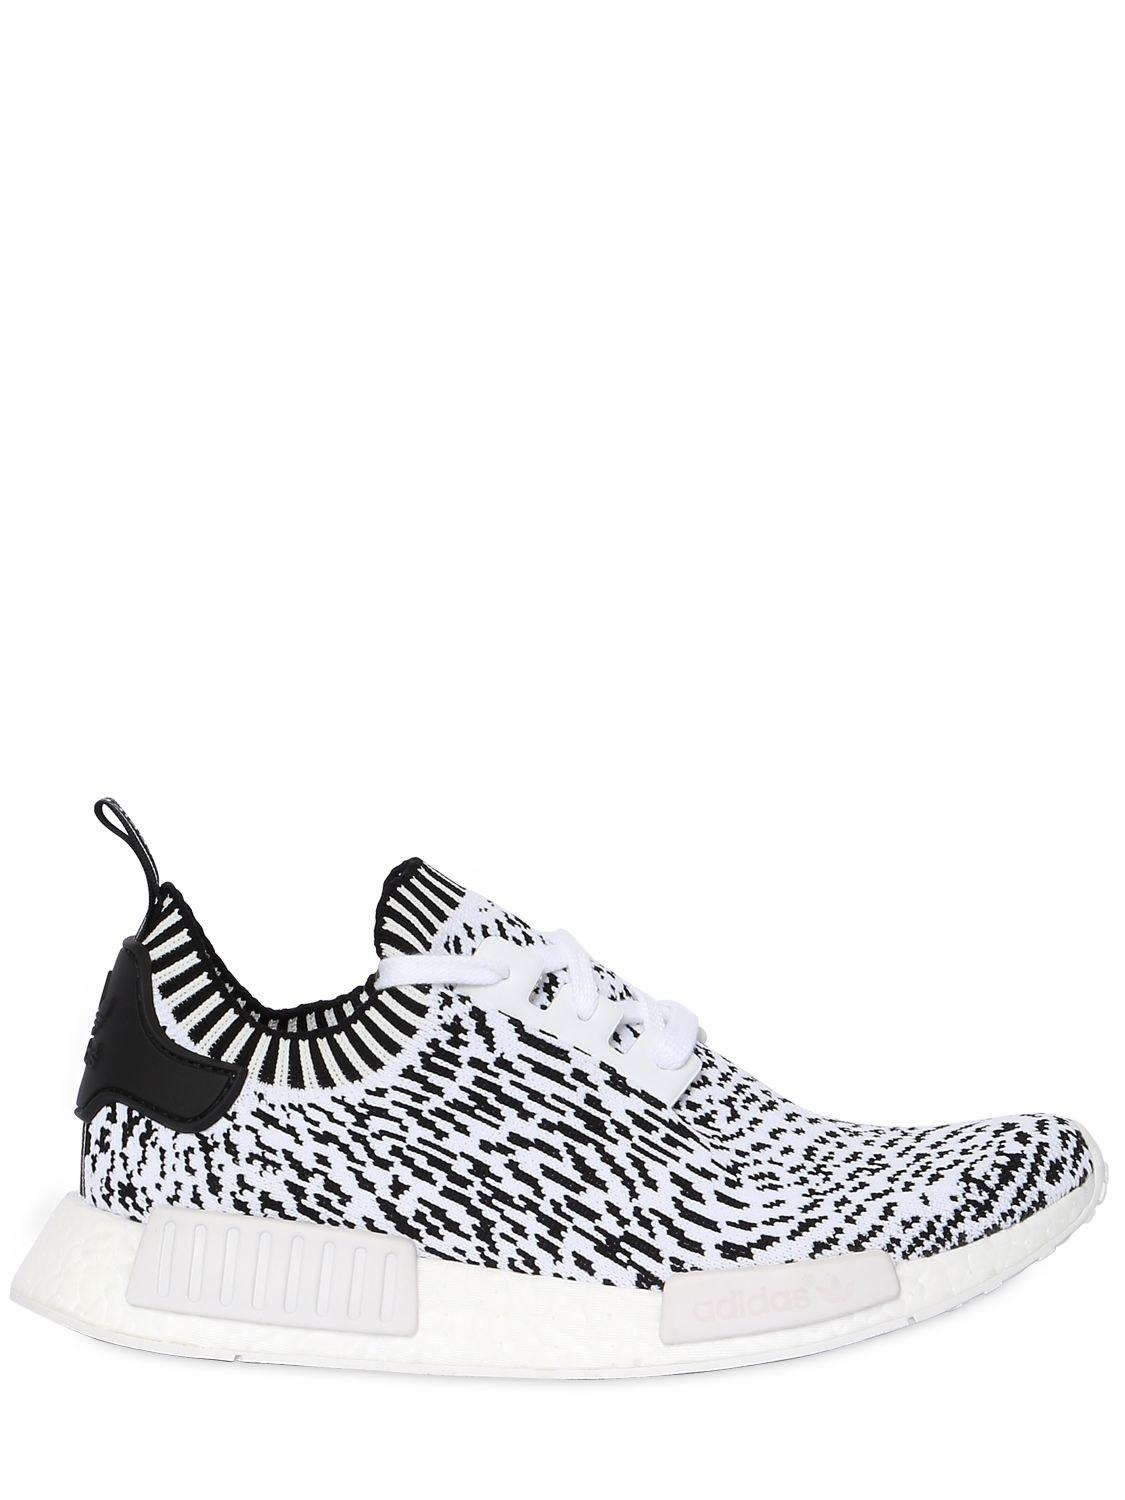 702a9eb4c21fa Lyst - adidas Originals Nmd R1 Primeknit Sneakers in White for Men ...